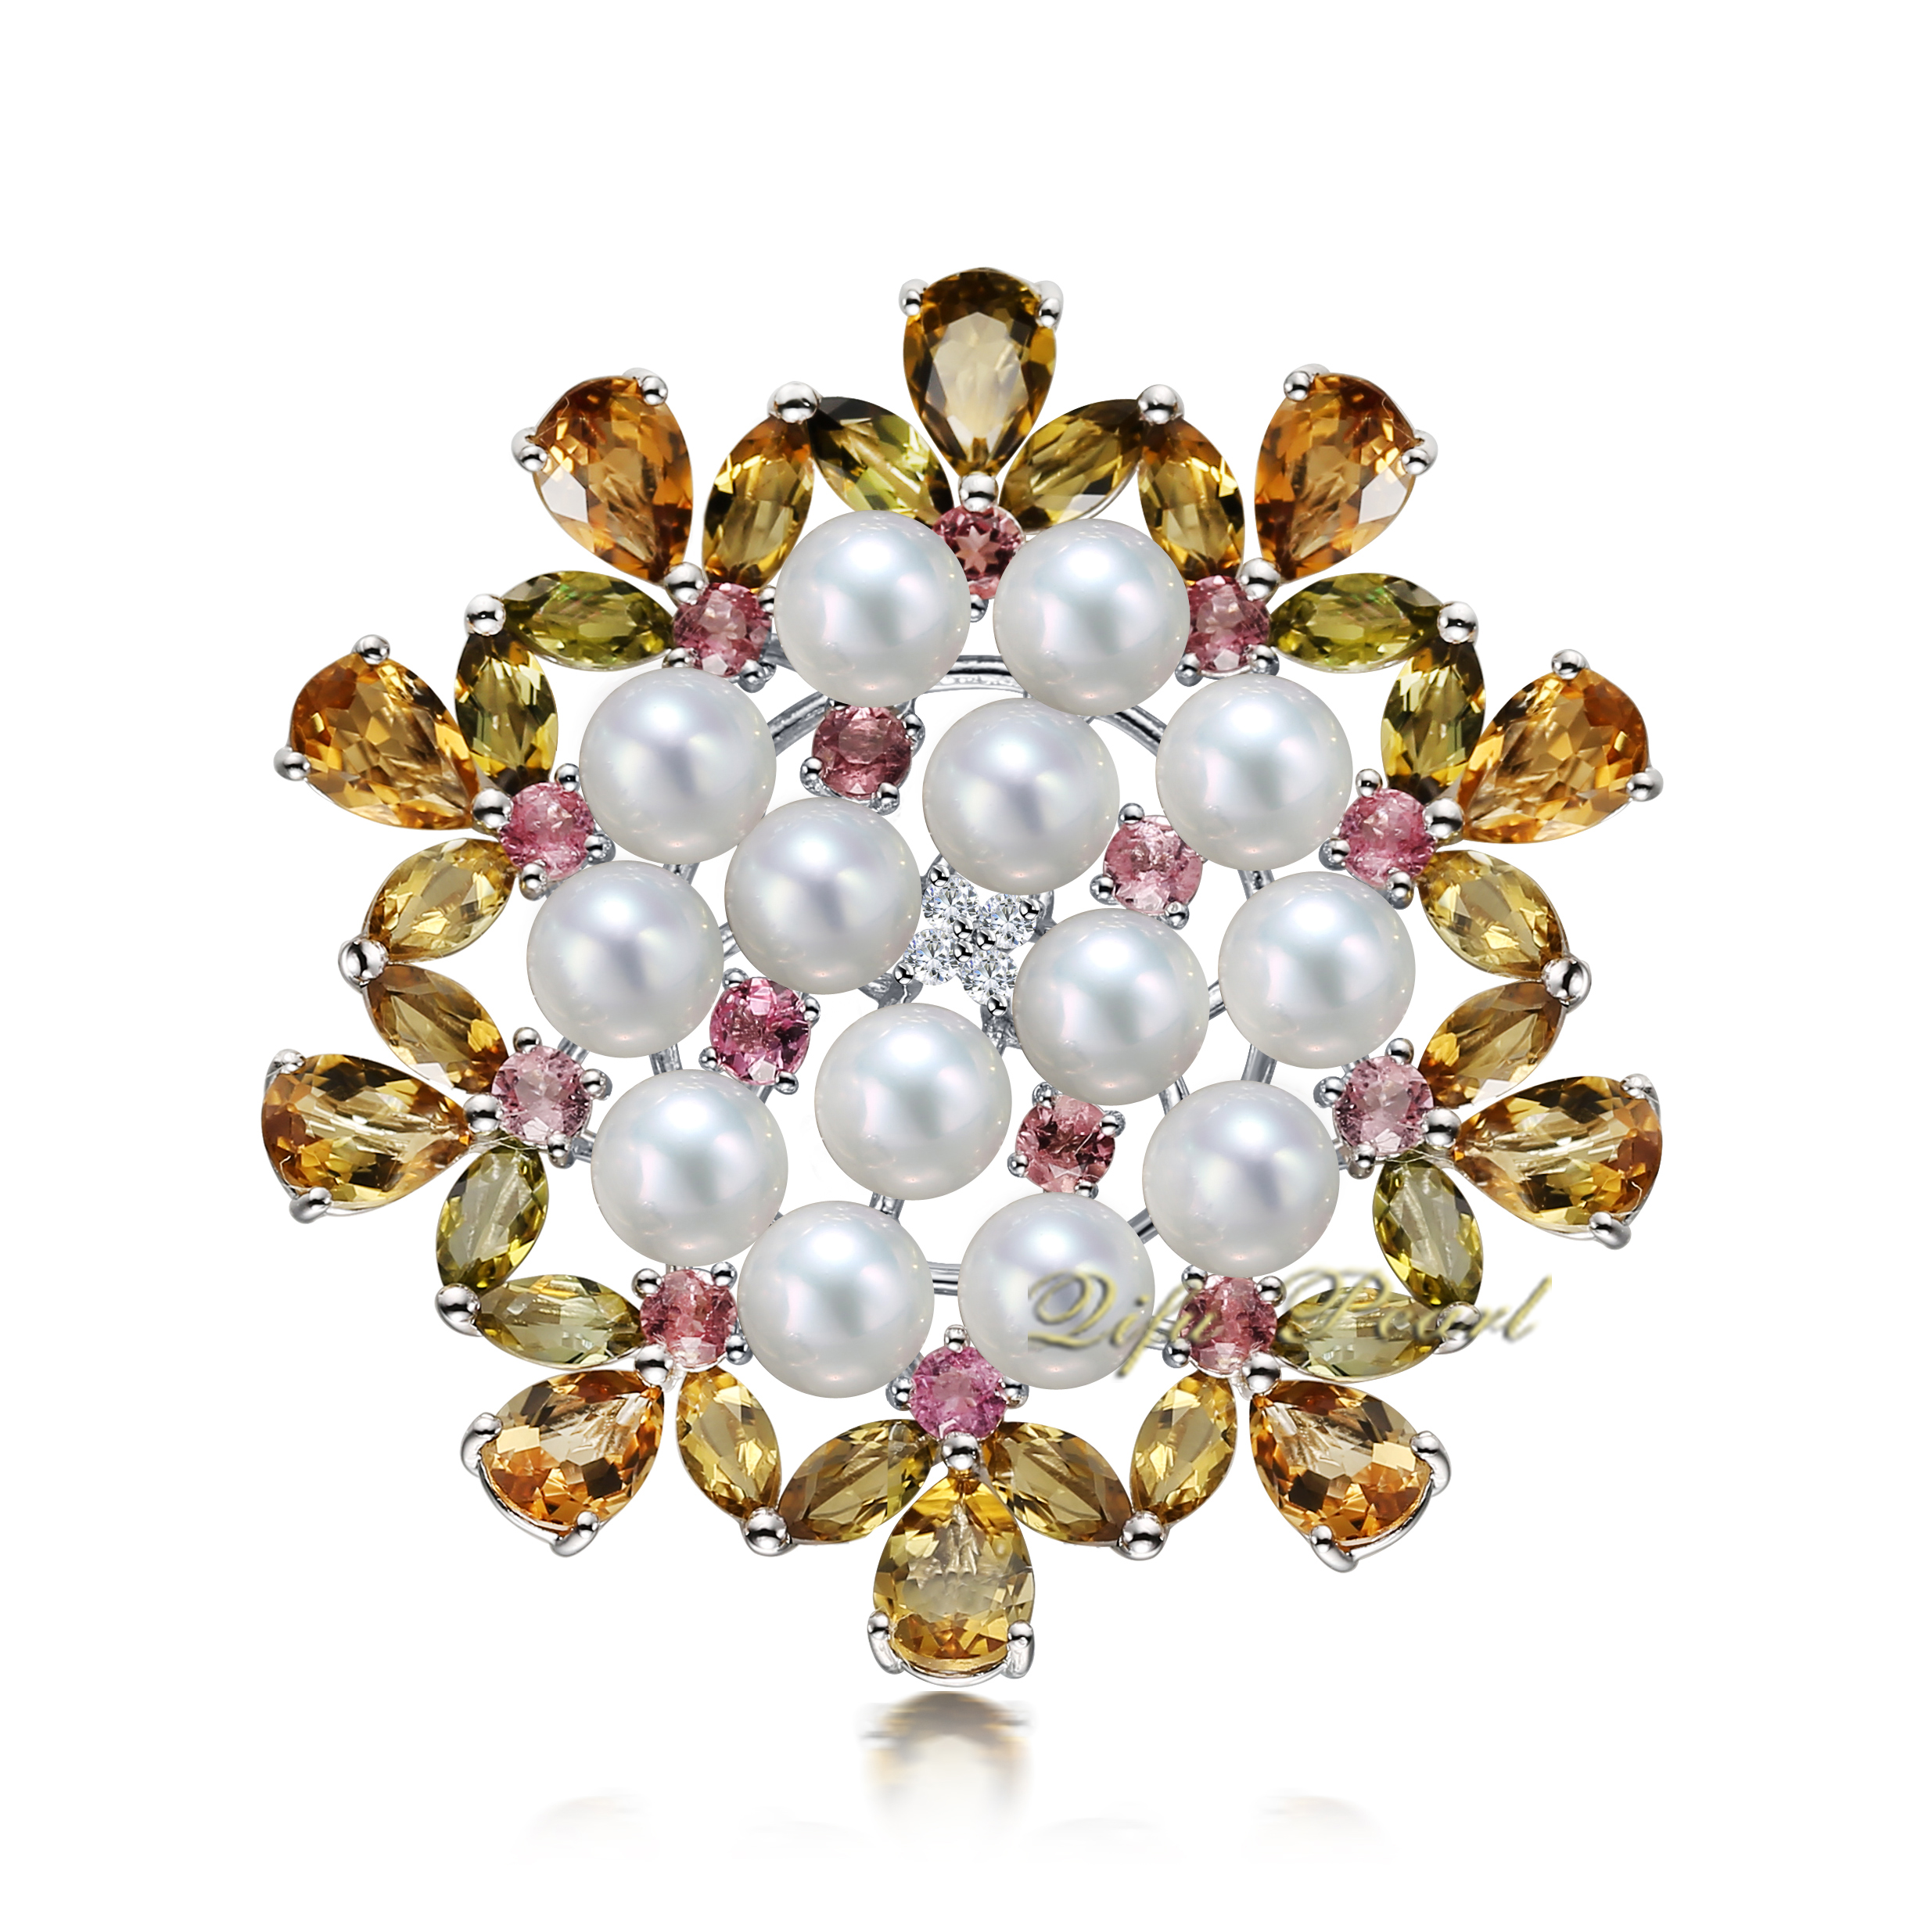 9K White Gold Freshwater Pearl Brooch